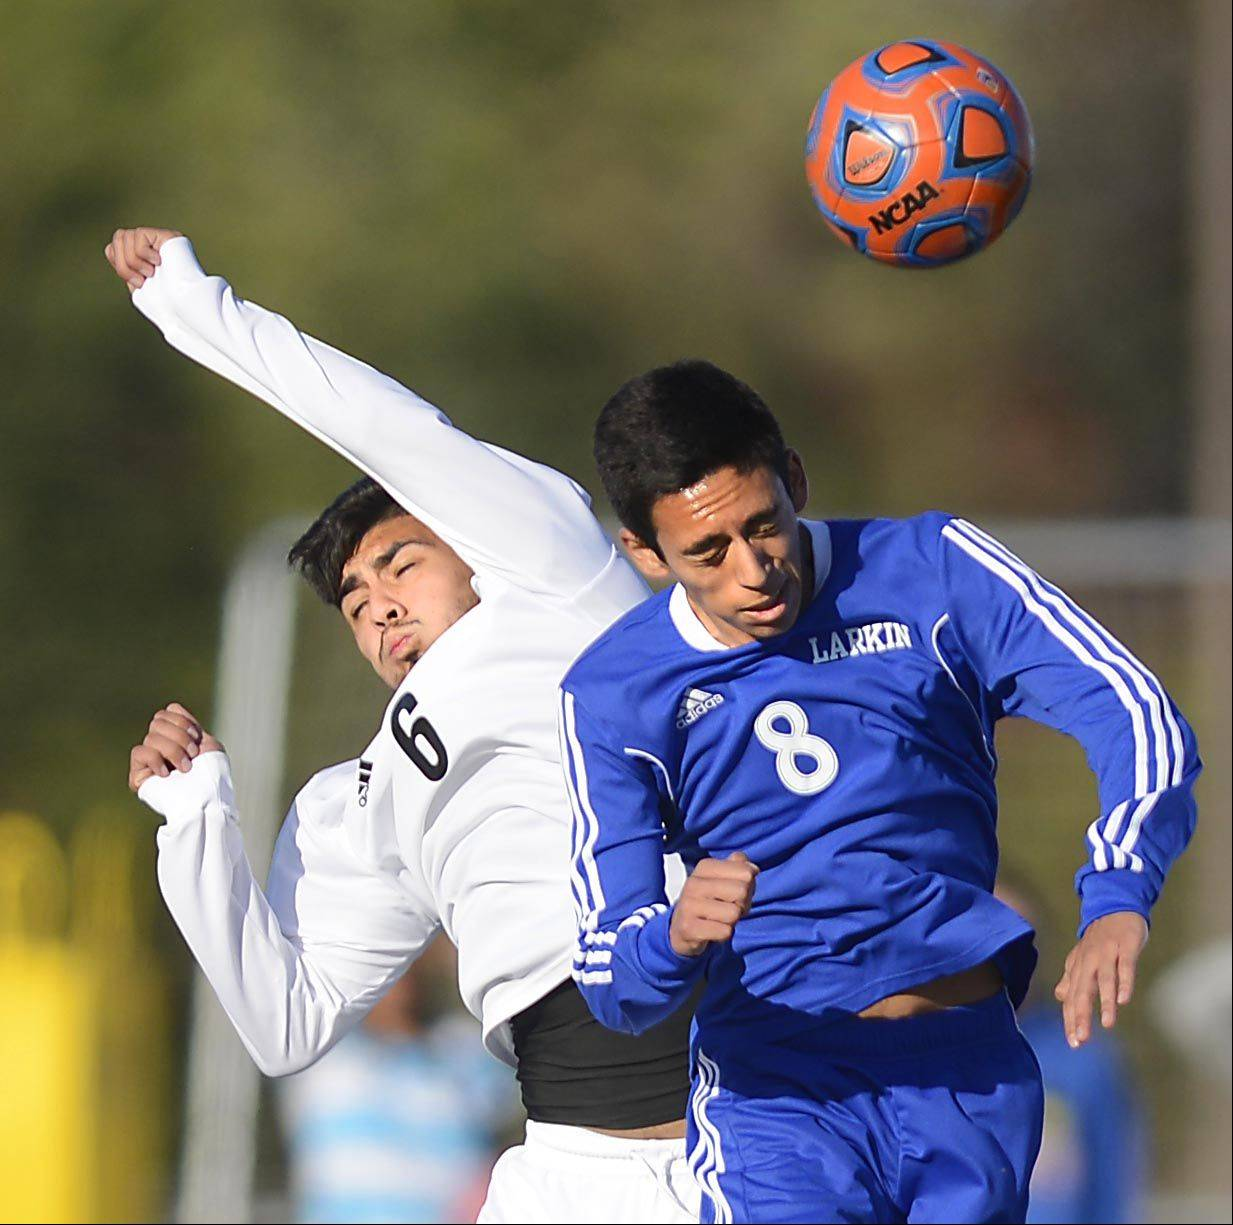 Streamwood's Christian Vences and Larkin's Jesus Avila, right, compete for a midfield header Monday in Streamwood.